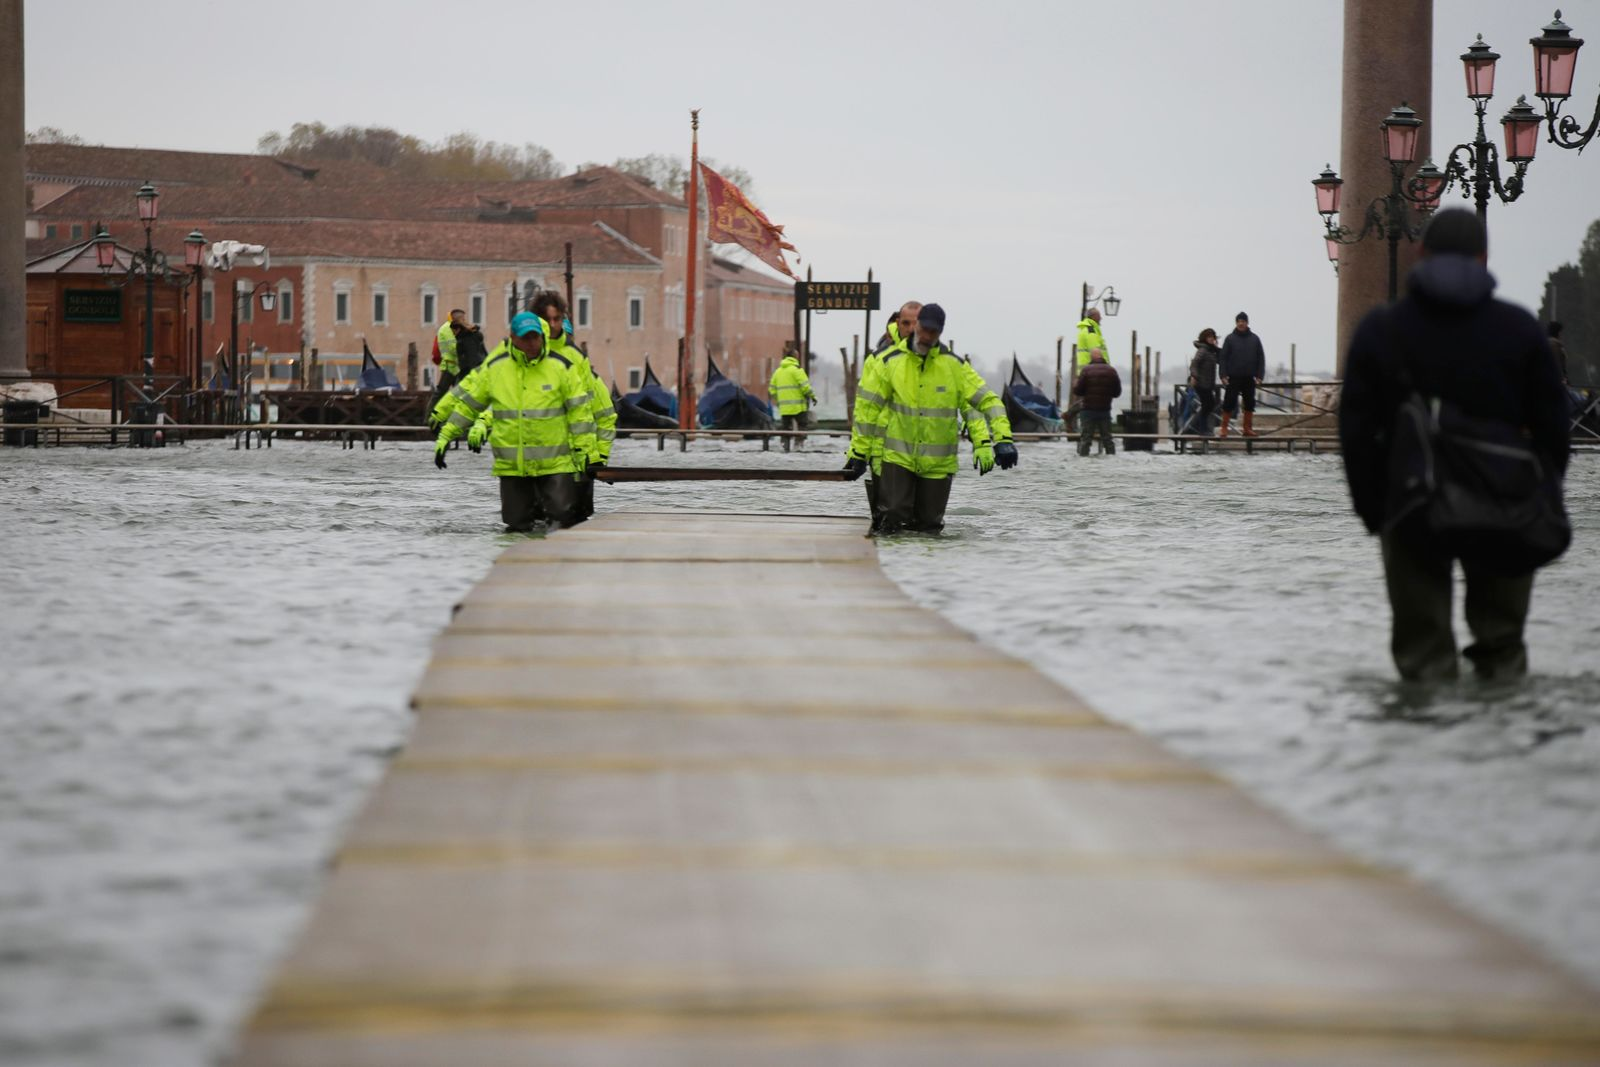 Municipality workers carry wooden boards to make a trestle bridge in a flooded St. Mark's Square at Venice, Italy, Friday, Nov. 15, 2019. (AP Photo/Luca Bruno)